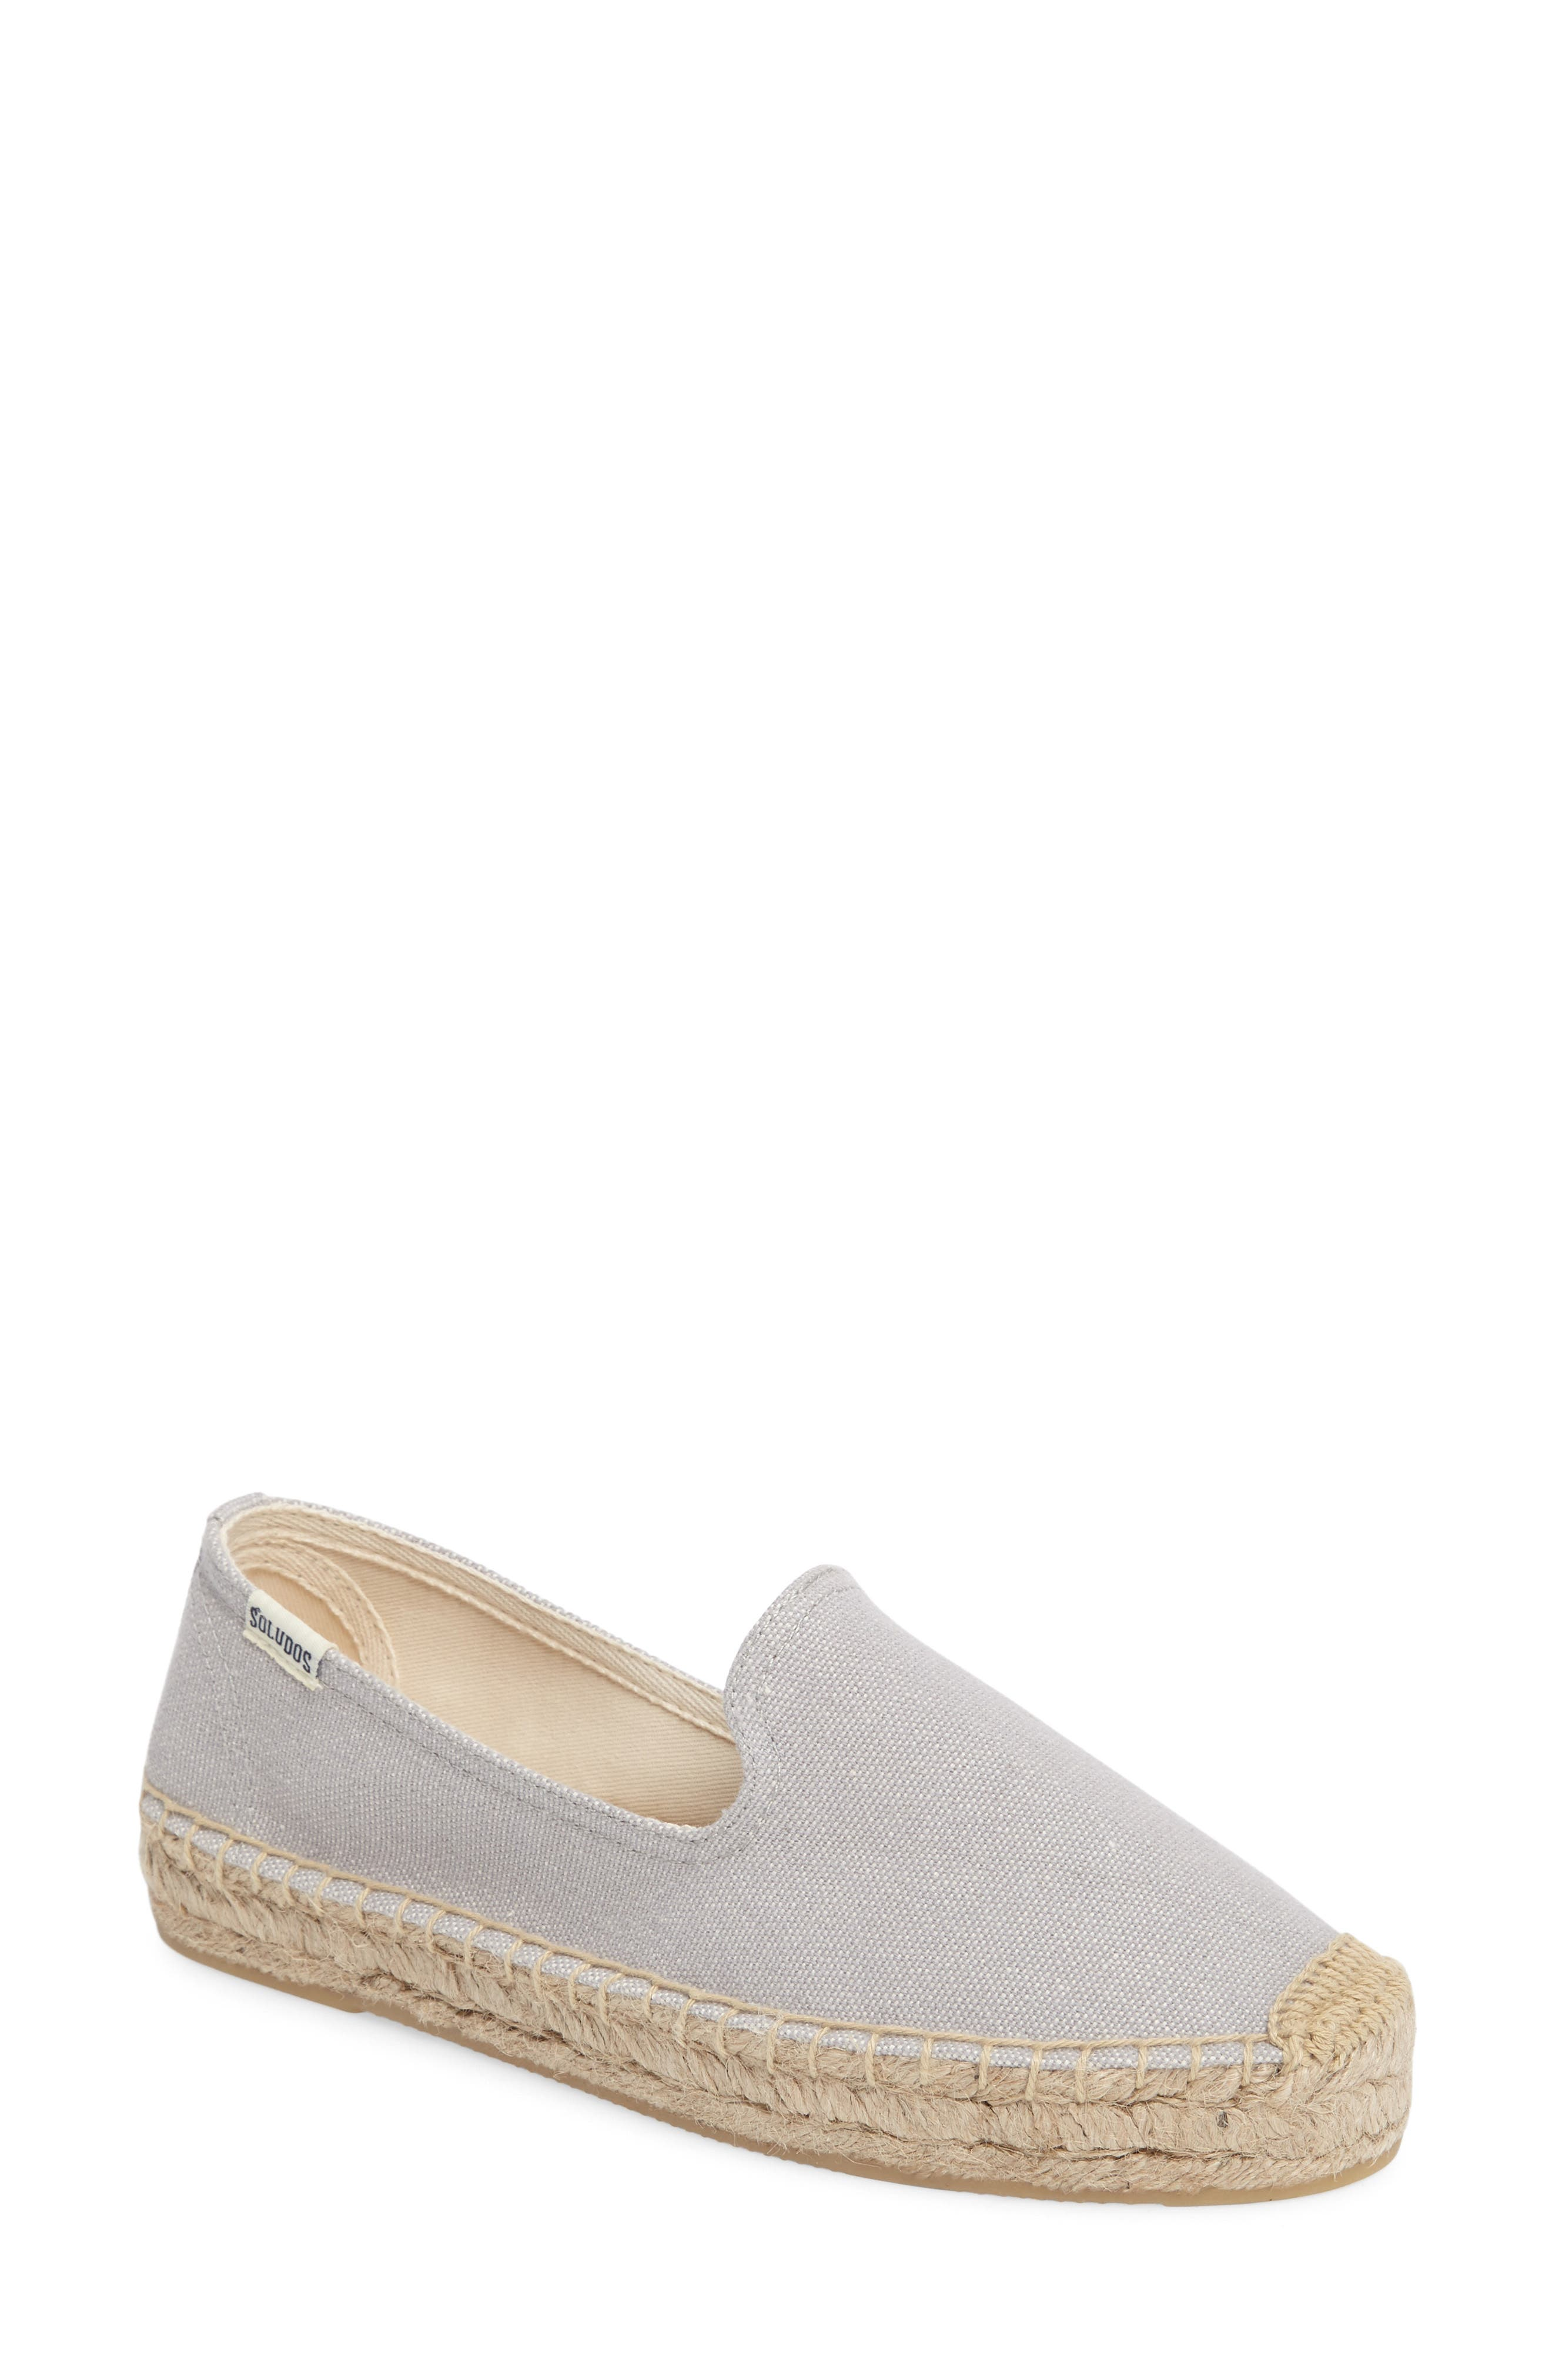 Espadrille Loafer,                             Main thumbnail 1, color,                             022